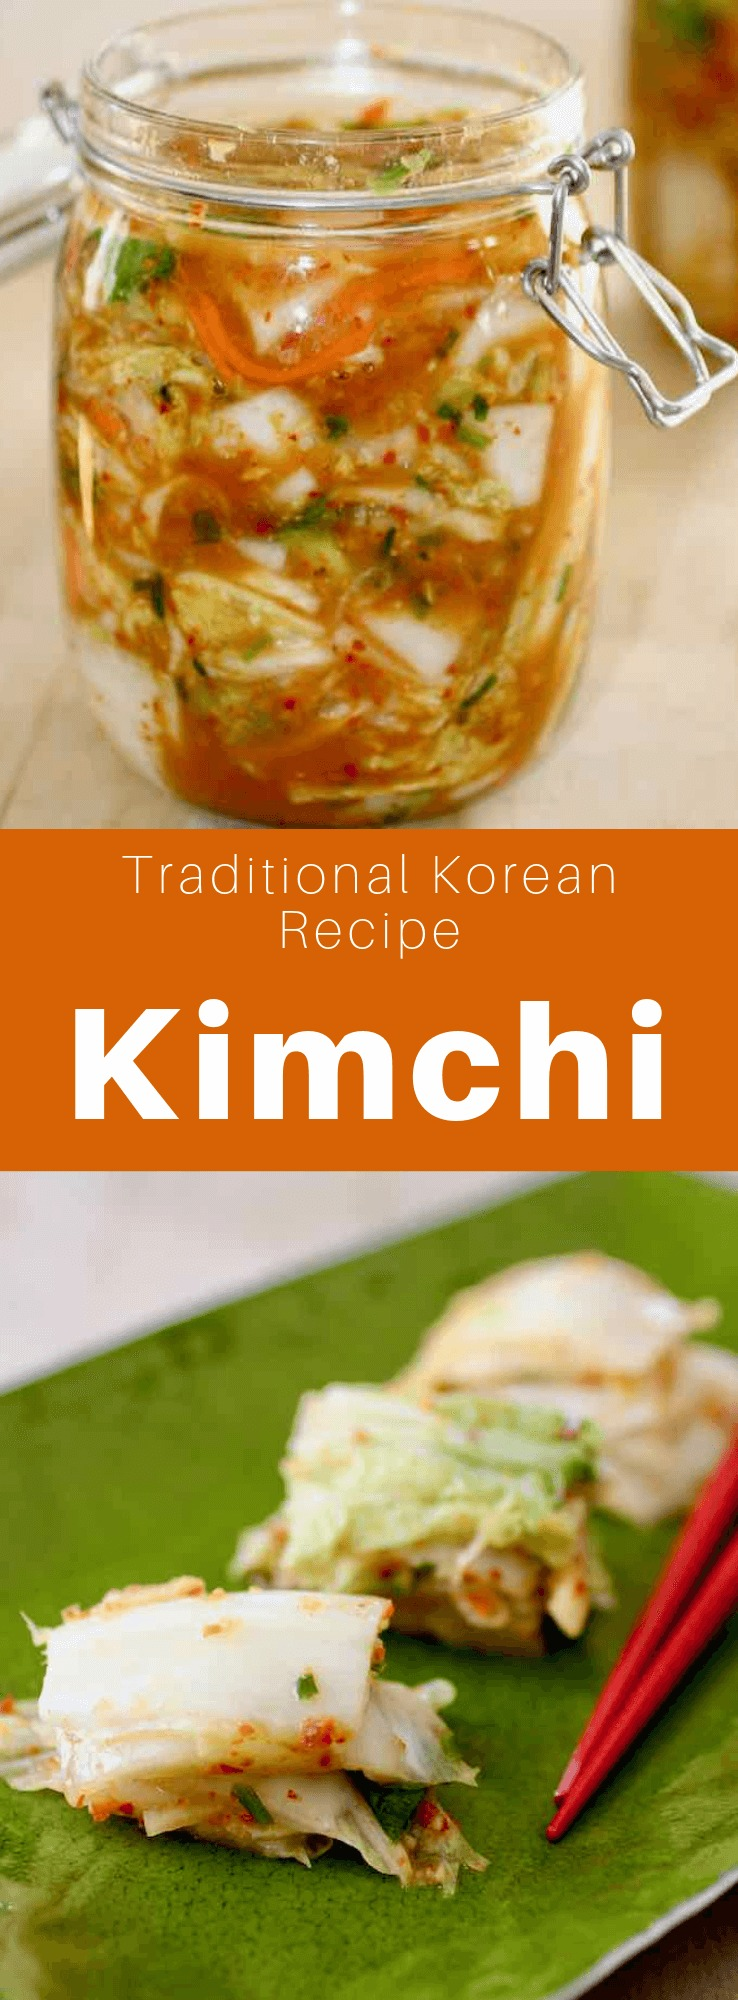 Kimchi is a traditional Korean condiment, usually made from salted and fermented vegetables, such as napa cabbage and white radish. #KoreanFood #KoreanRecipe #KoreanCuisine #WorldCuisine #196flavors